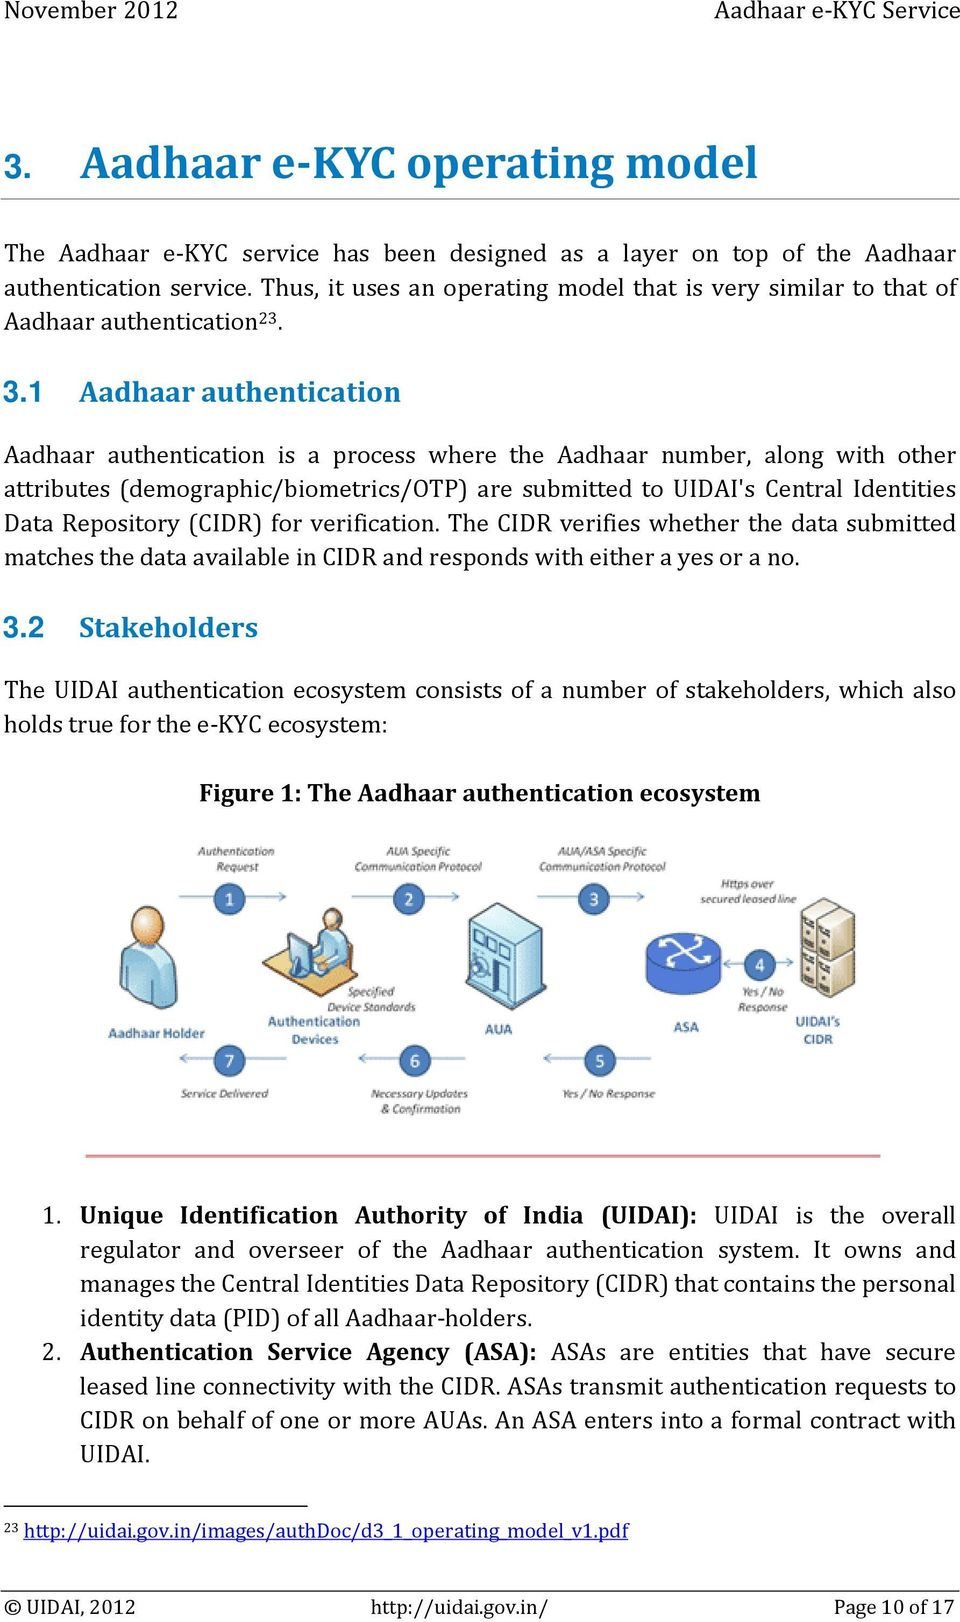 1 Aadhaar authentication Aadhaar authentication is a process where the Aadhaar number, along with other attributes (demographic/biometrics/otp) are submitted to UIDAI's Central Identities Data